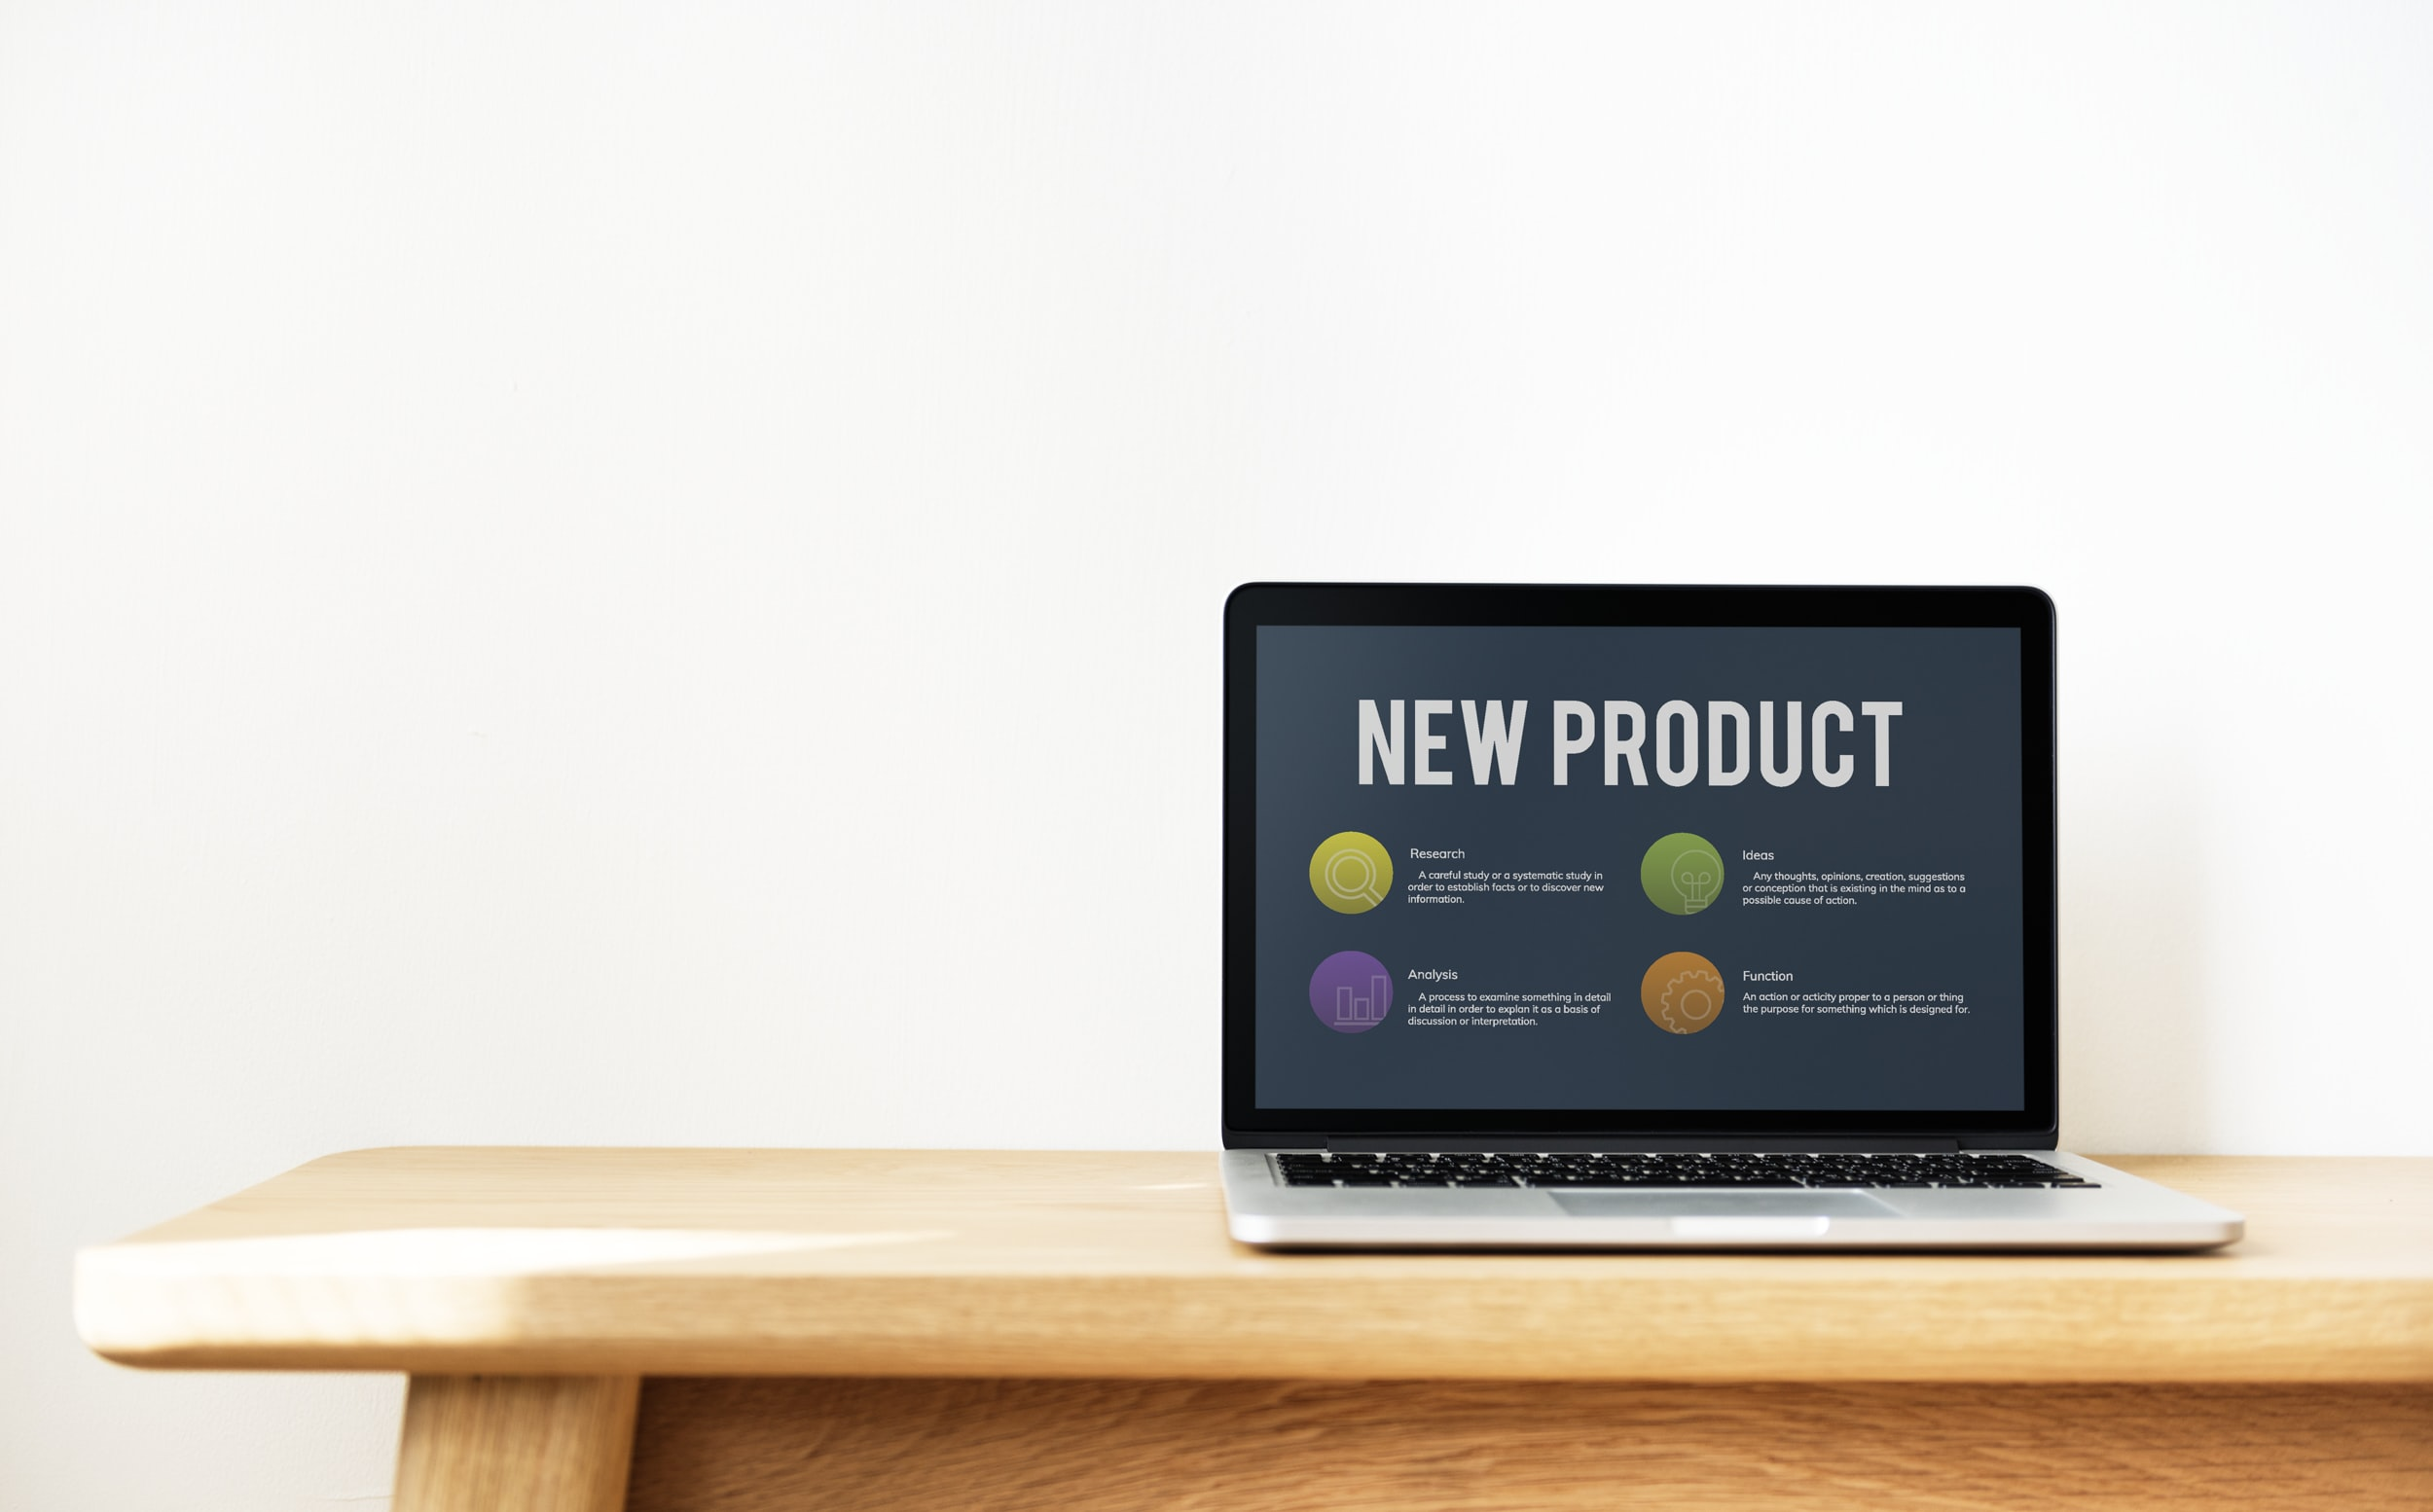 MacBook Pro displaying New Product text